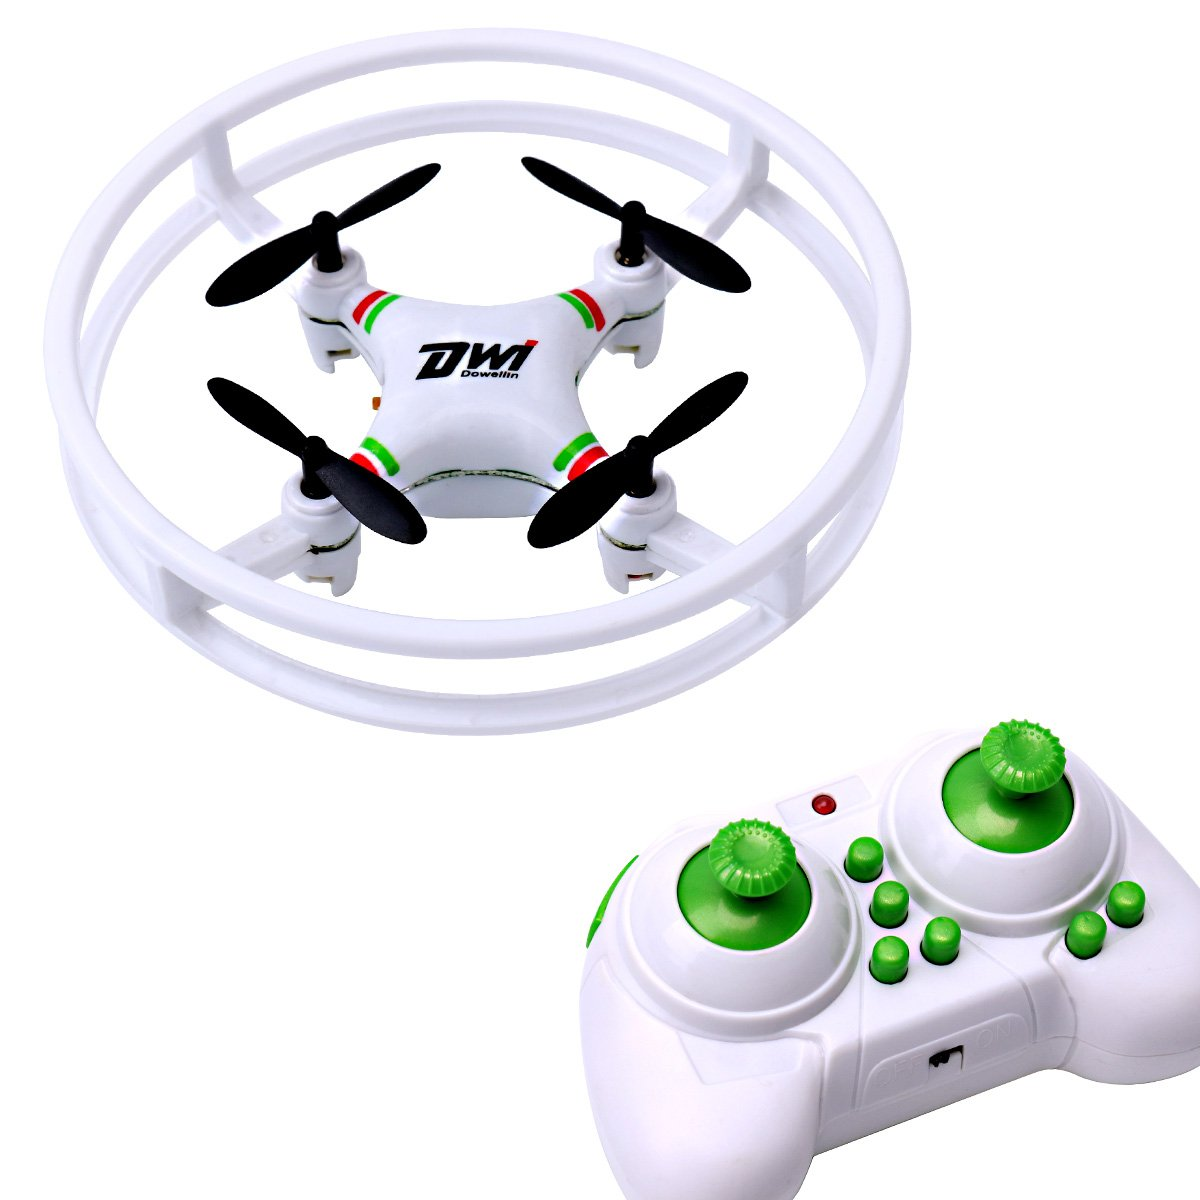 Dwi Dowellin indoor drone for kids Beginners Mini RC Quadcopter 2.4Ghz 4CH 6-Axis Nano Drones RTF Helicopter D1 White